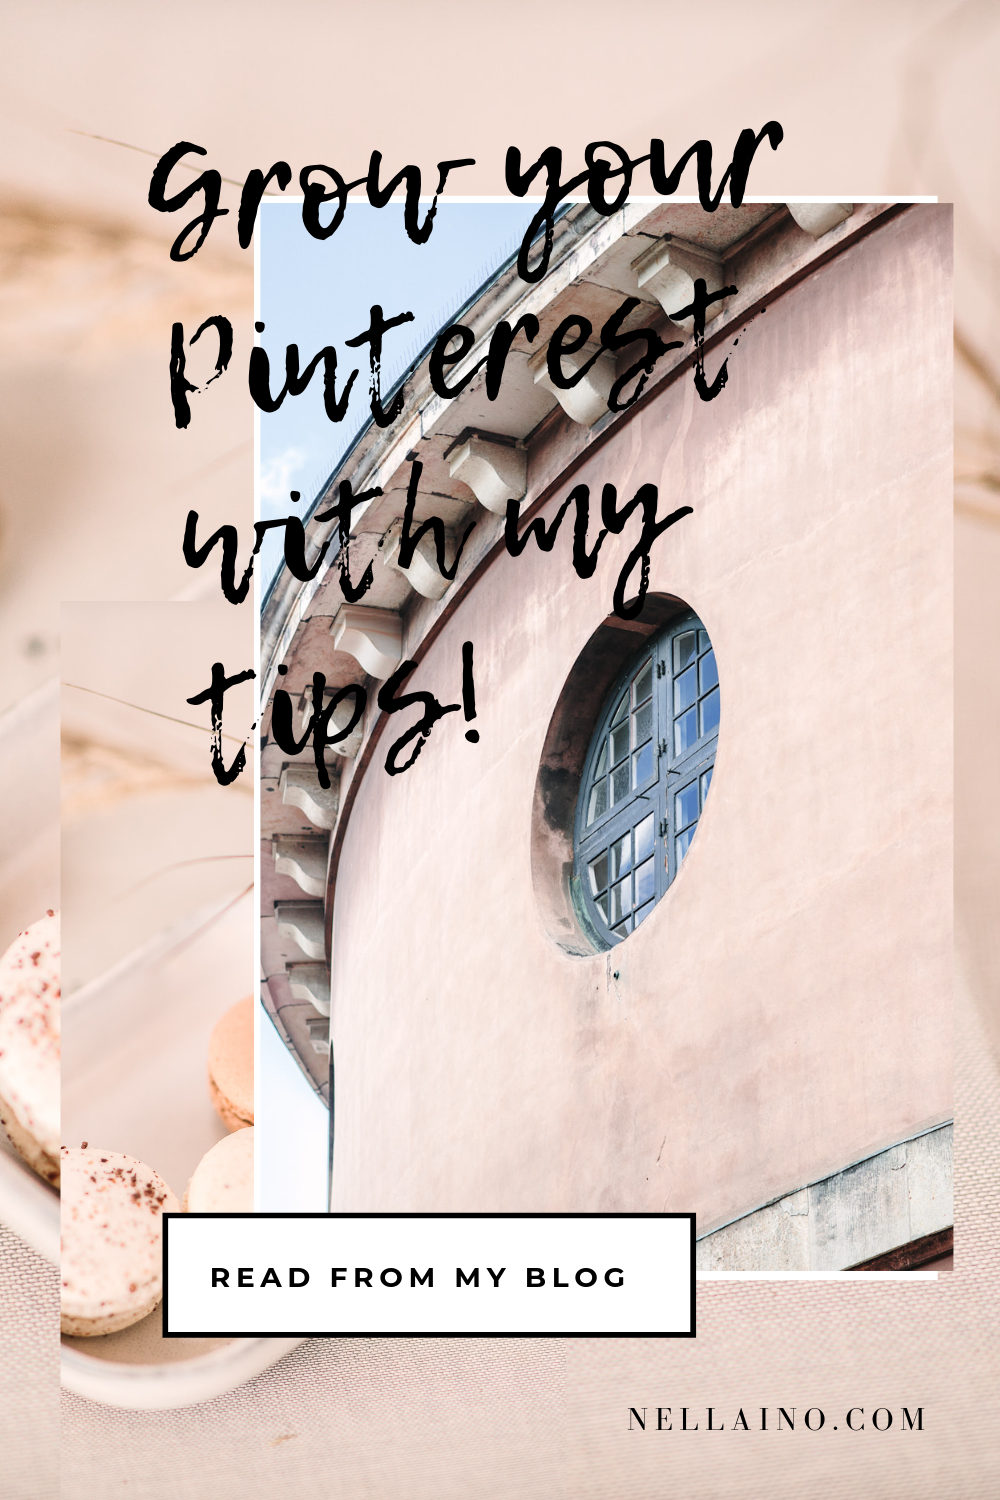 Grow your Pinterest traffic and create Pinterest marketing plan with Nellaino. Check out the blog post and create your Pinterest plan now. www.nellaino.com #pinterestplan #pinterestmarketing